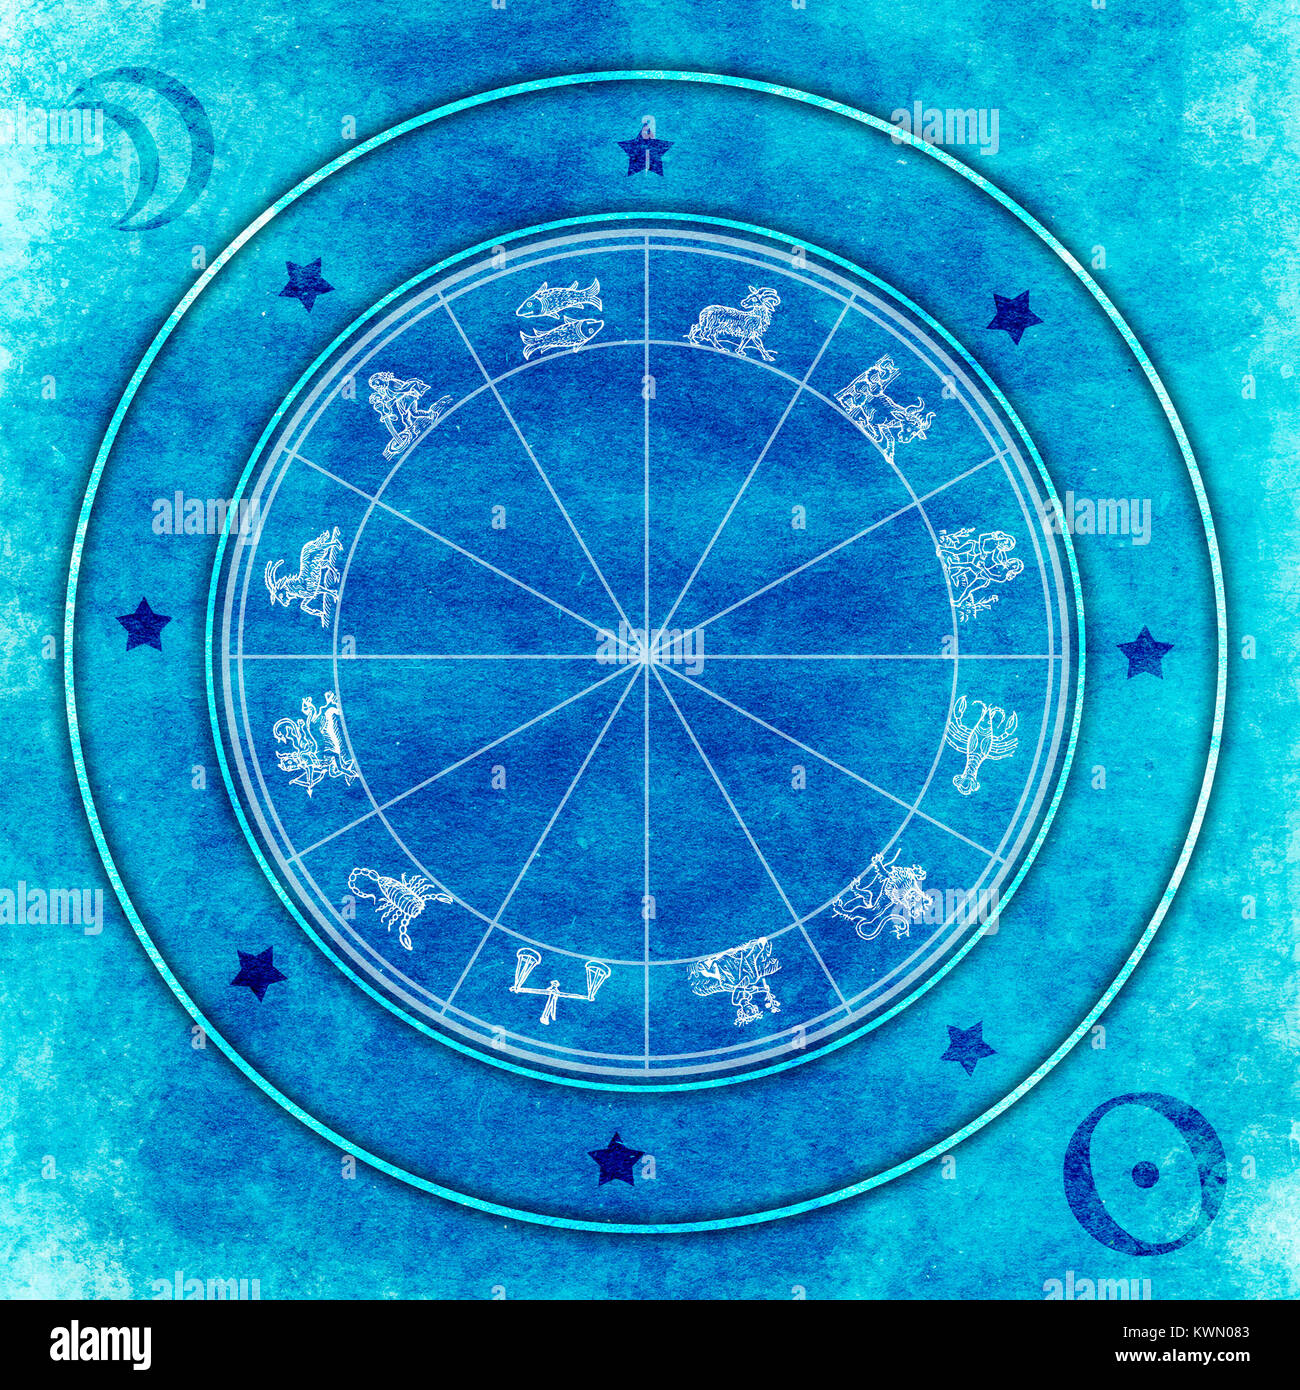 Astrology chart with all zodiac signs stock photo royalty free astrology chart with all zodiac signs nvjuhfo Image collections